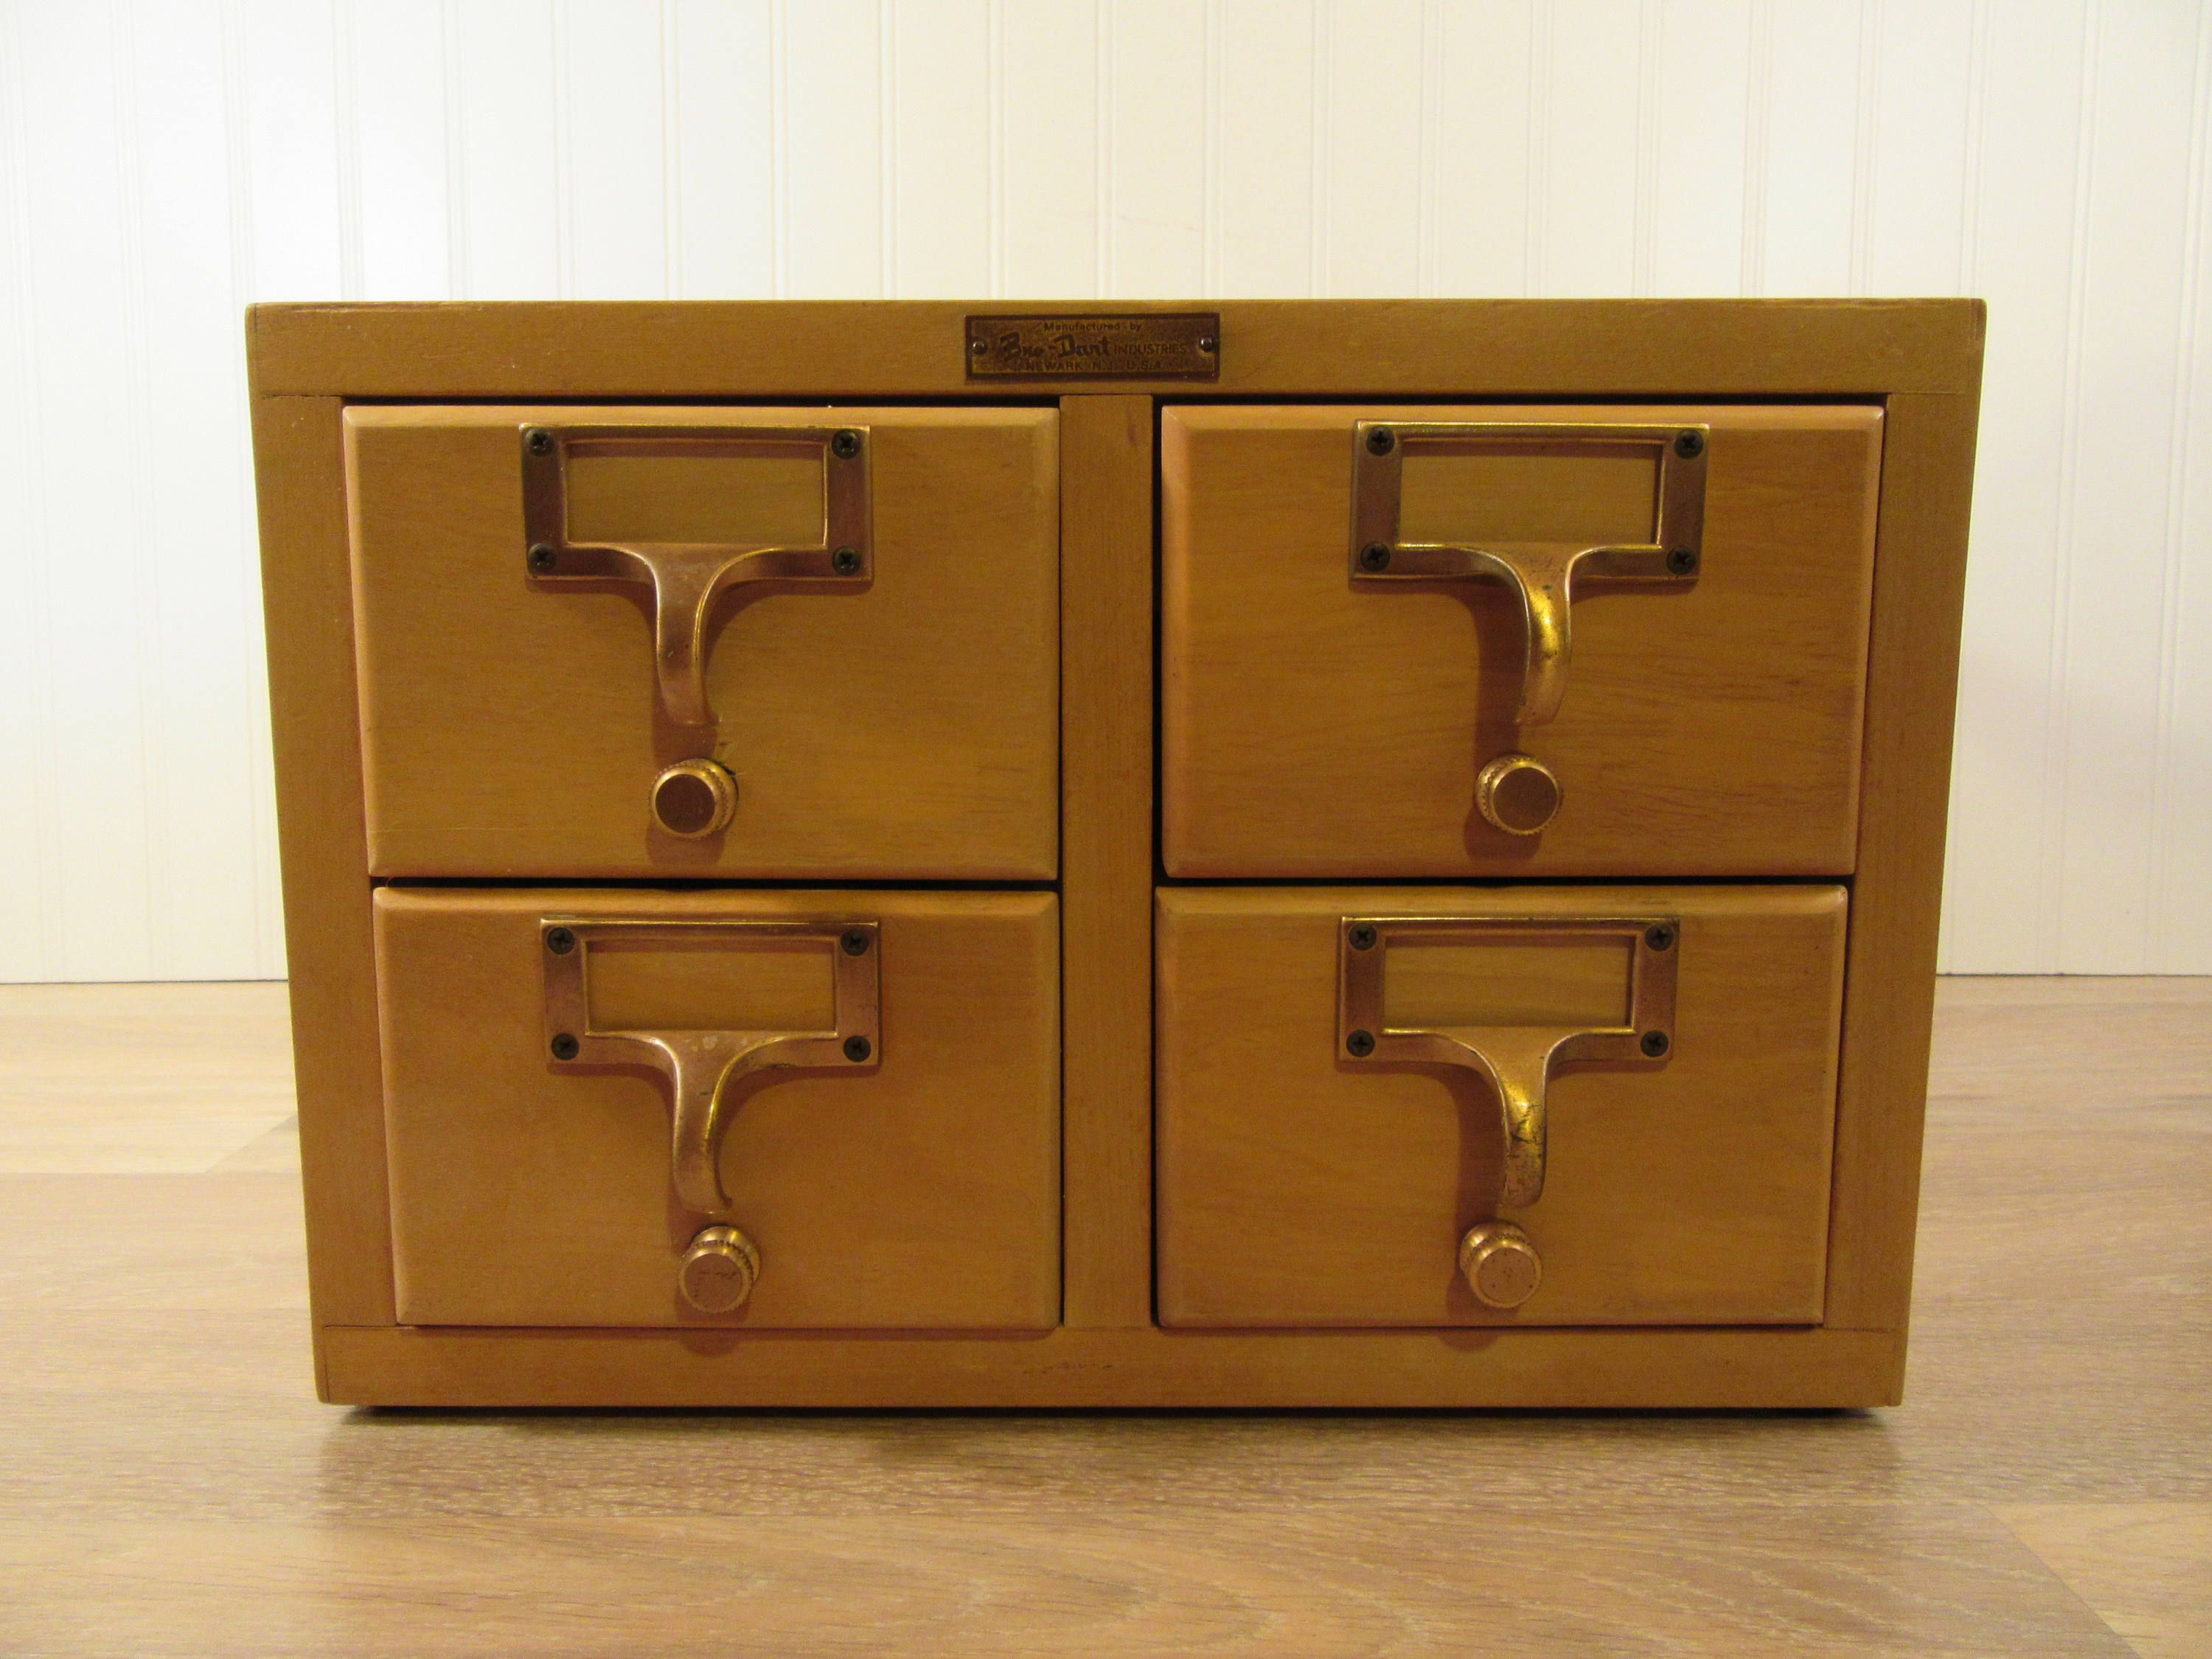 Four Drawer Wood Library Card Catalog With Pull Out Drawers And